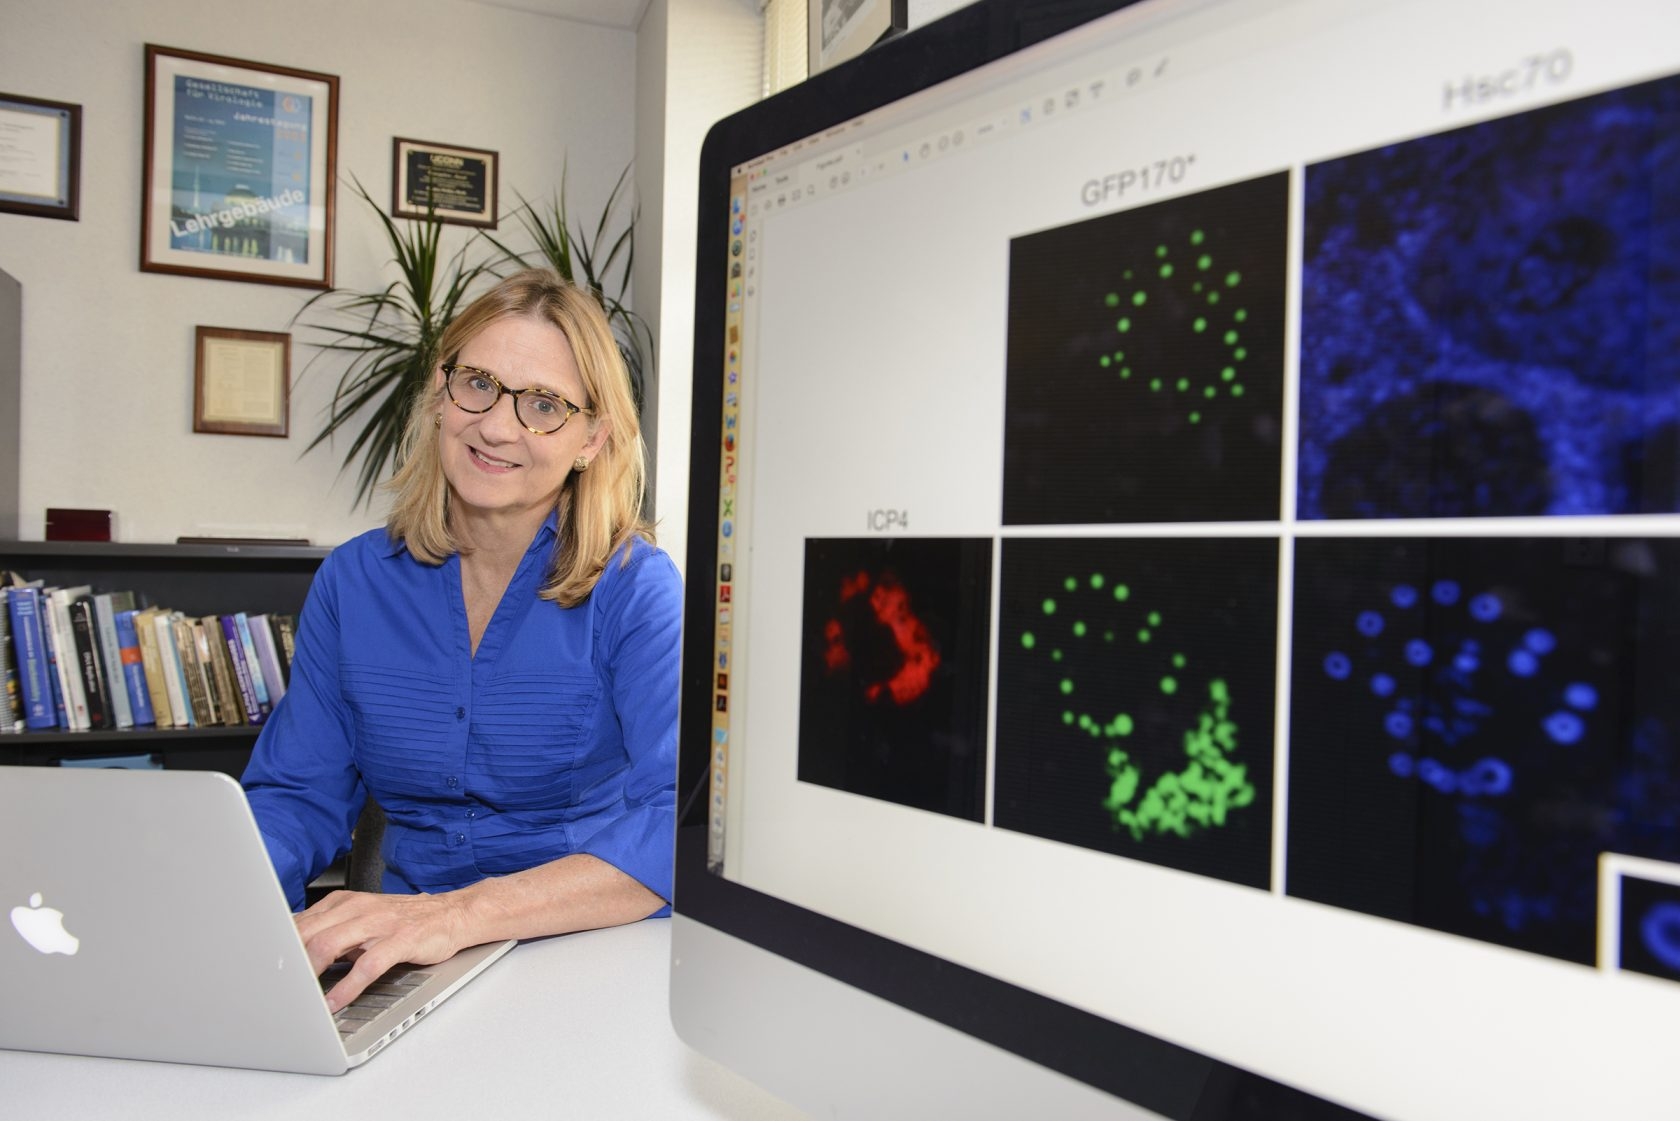 Sandra K. Weller, Ph.D., Professor of Molecular Biology, Chair of the Department of Molecular Biology and Biophysics.